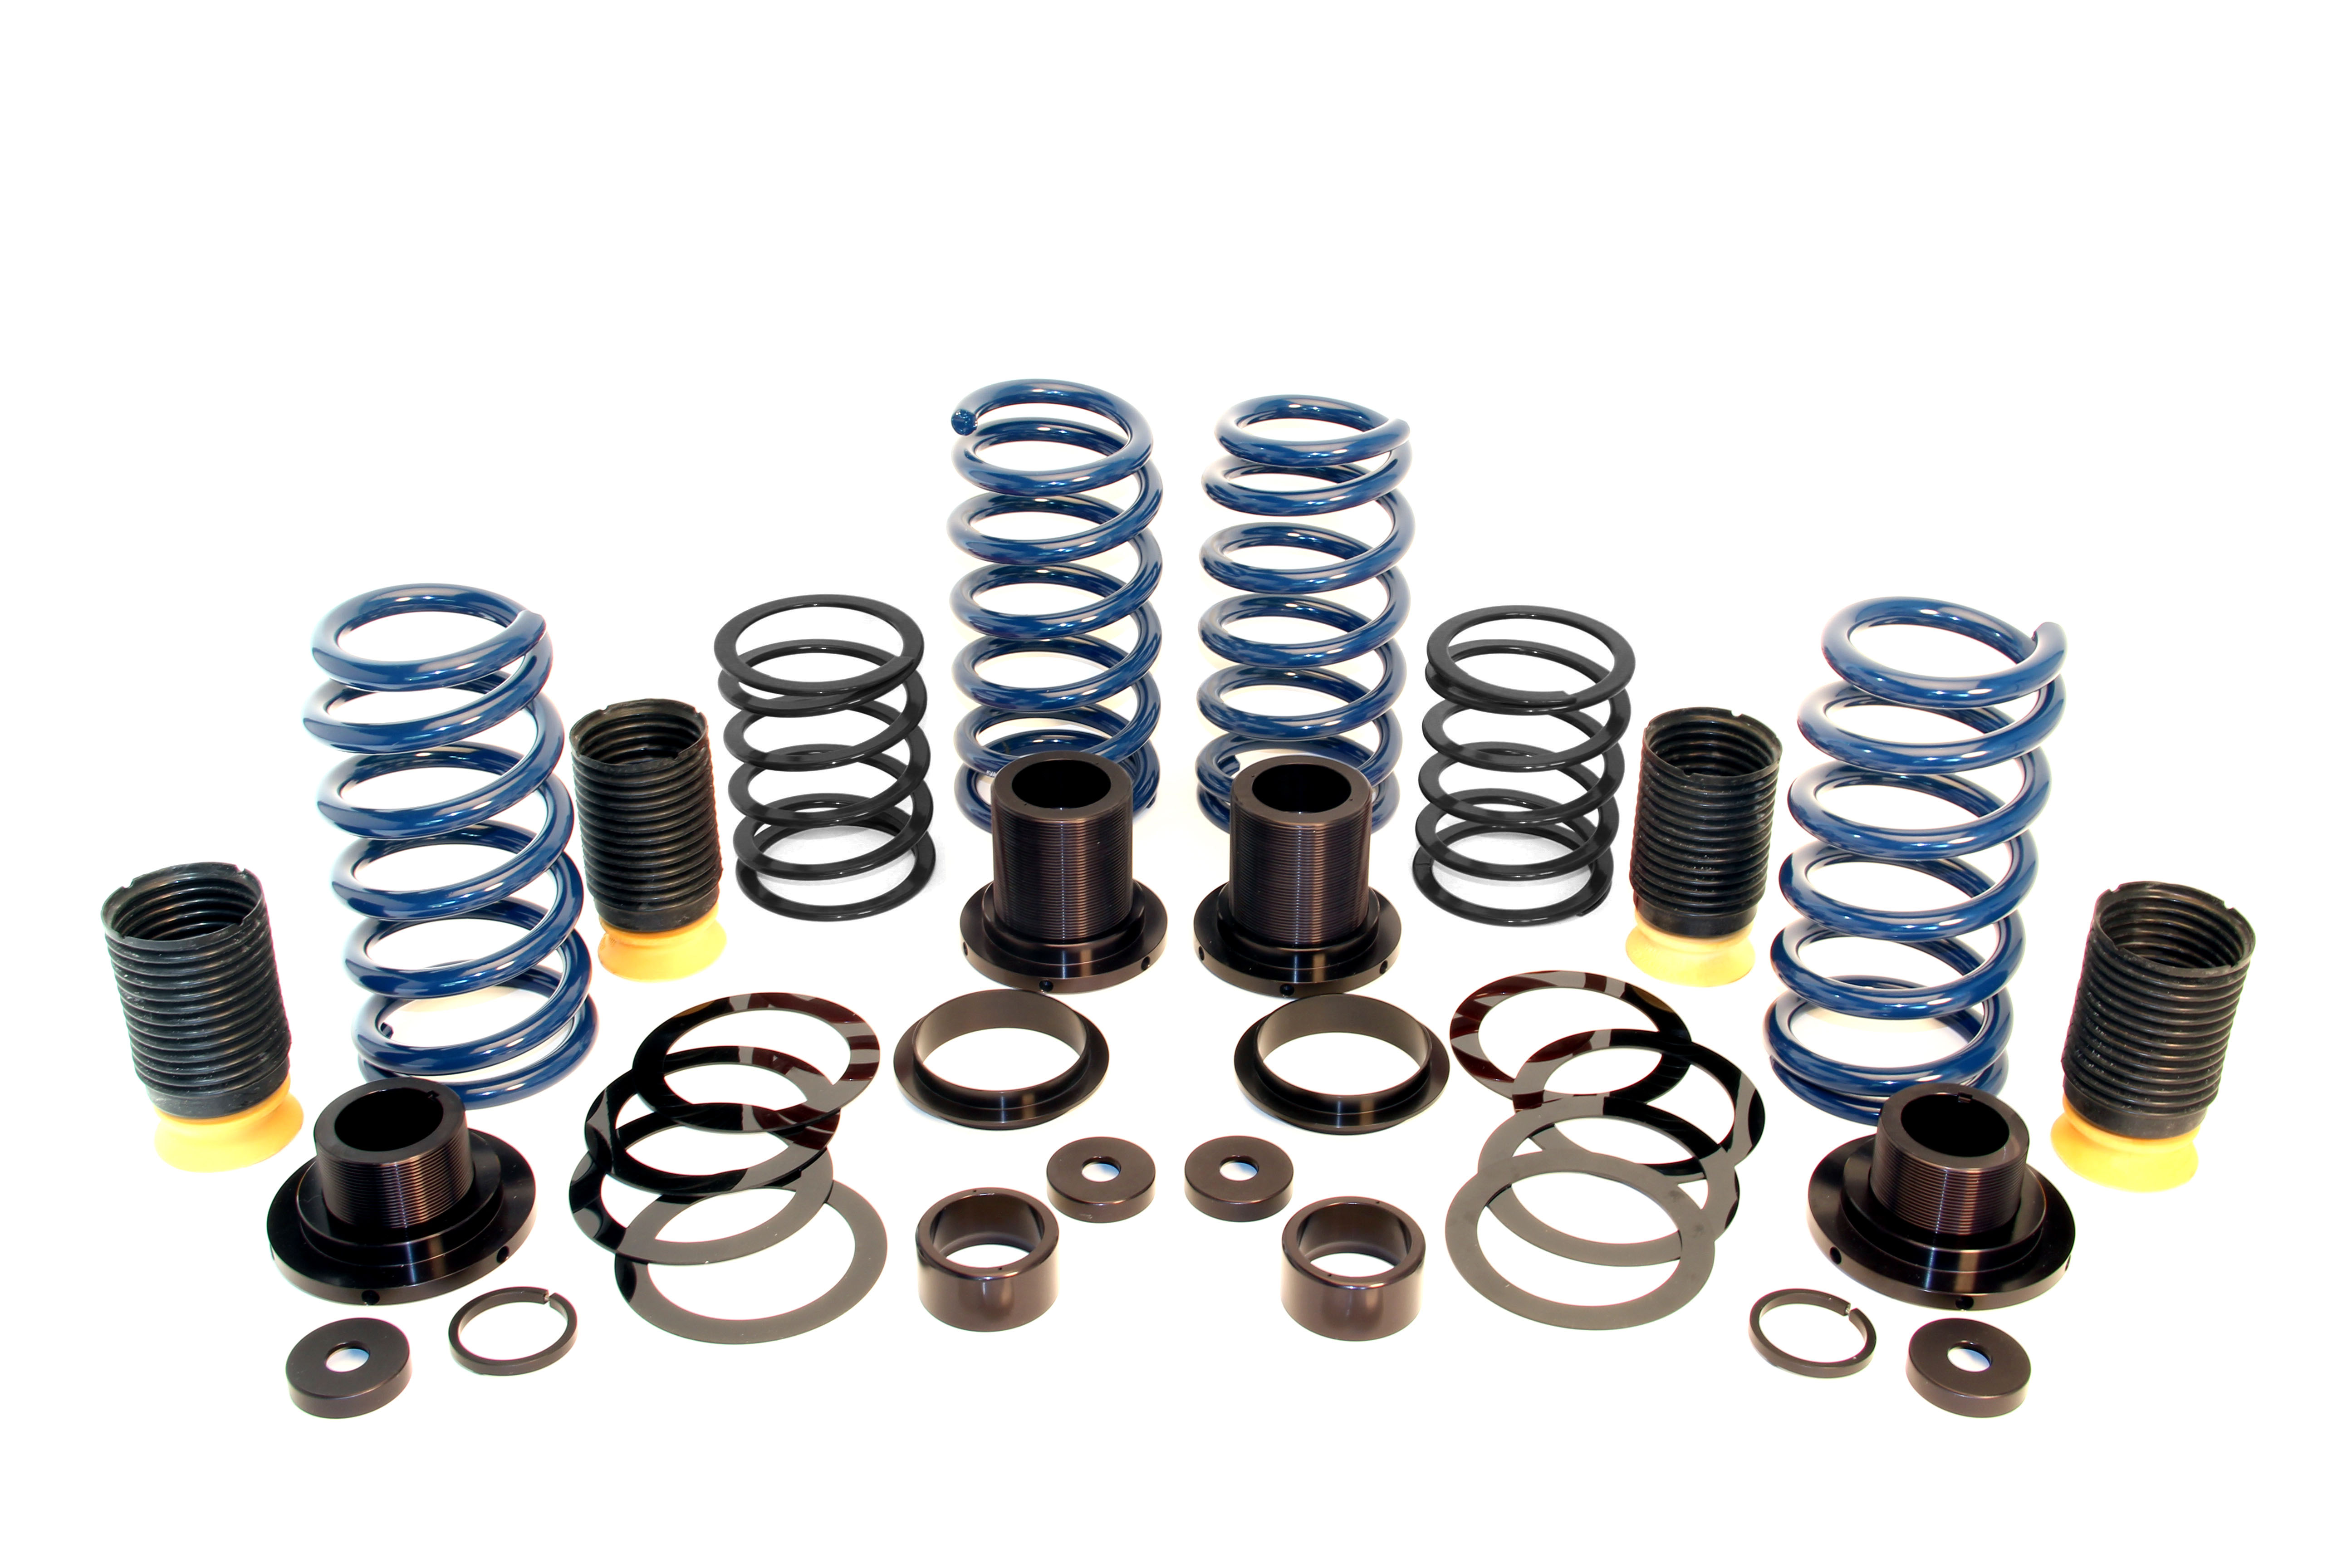 D190-1011 Dinan Coilover Adjustable Spring Lowering Kit; Coil-Over Suspension Kit